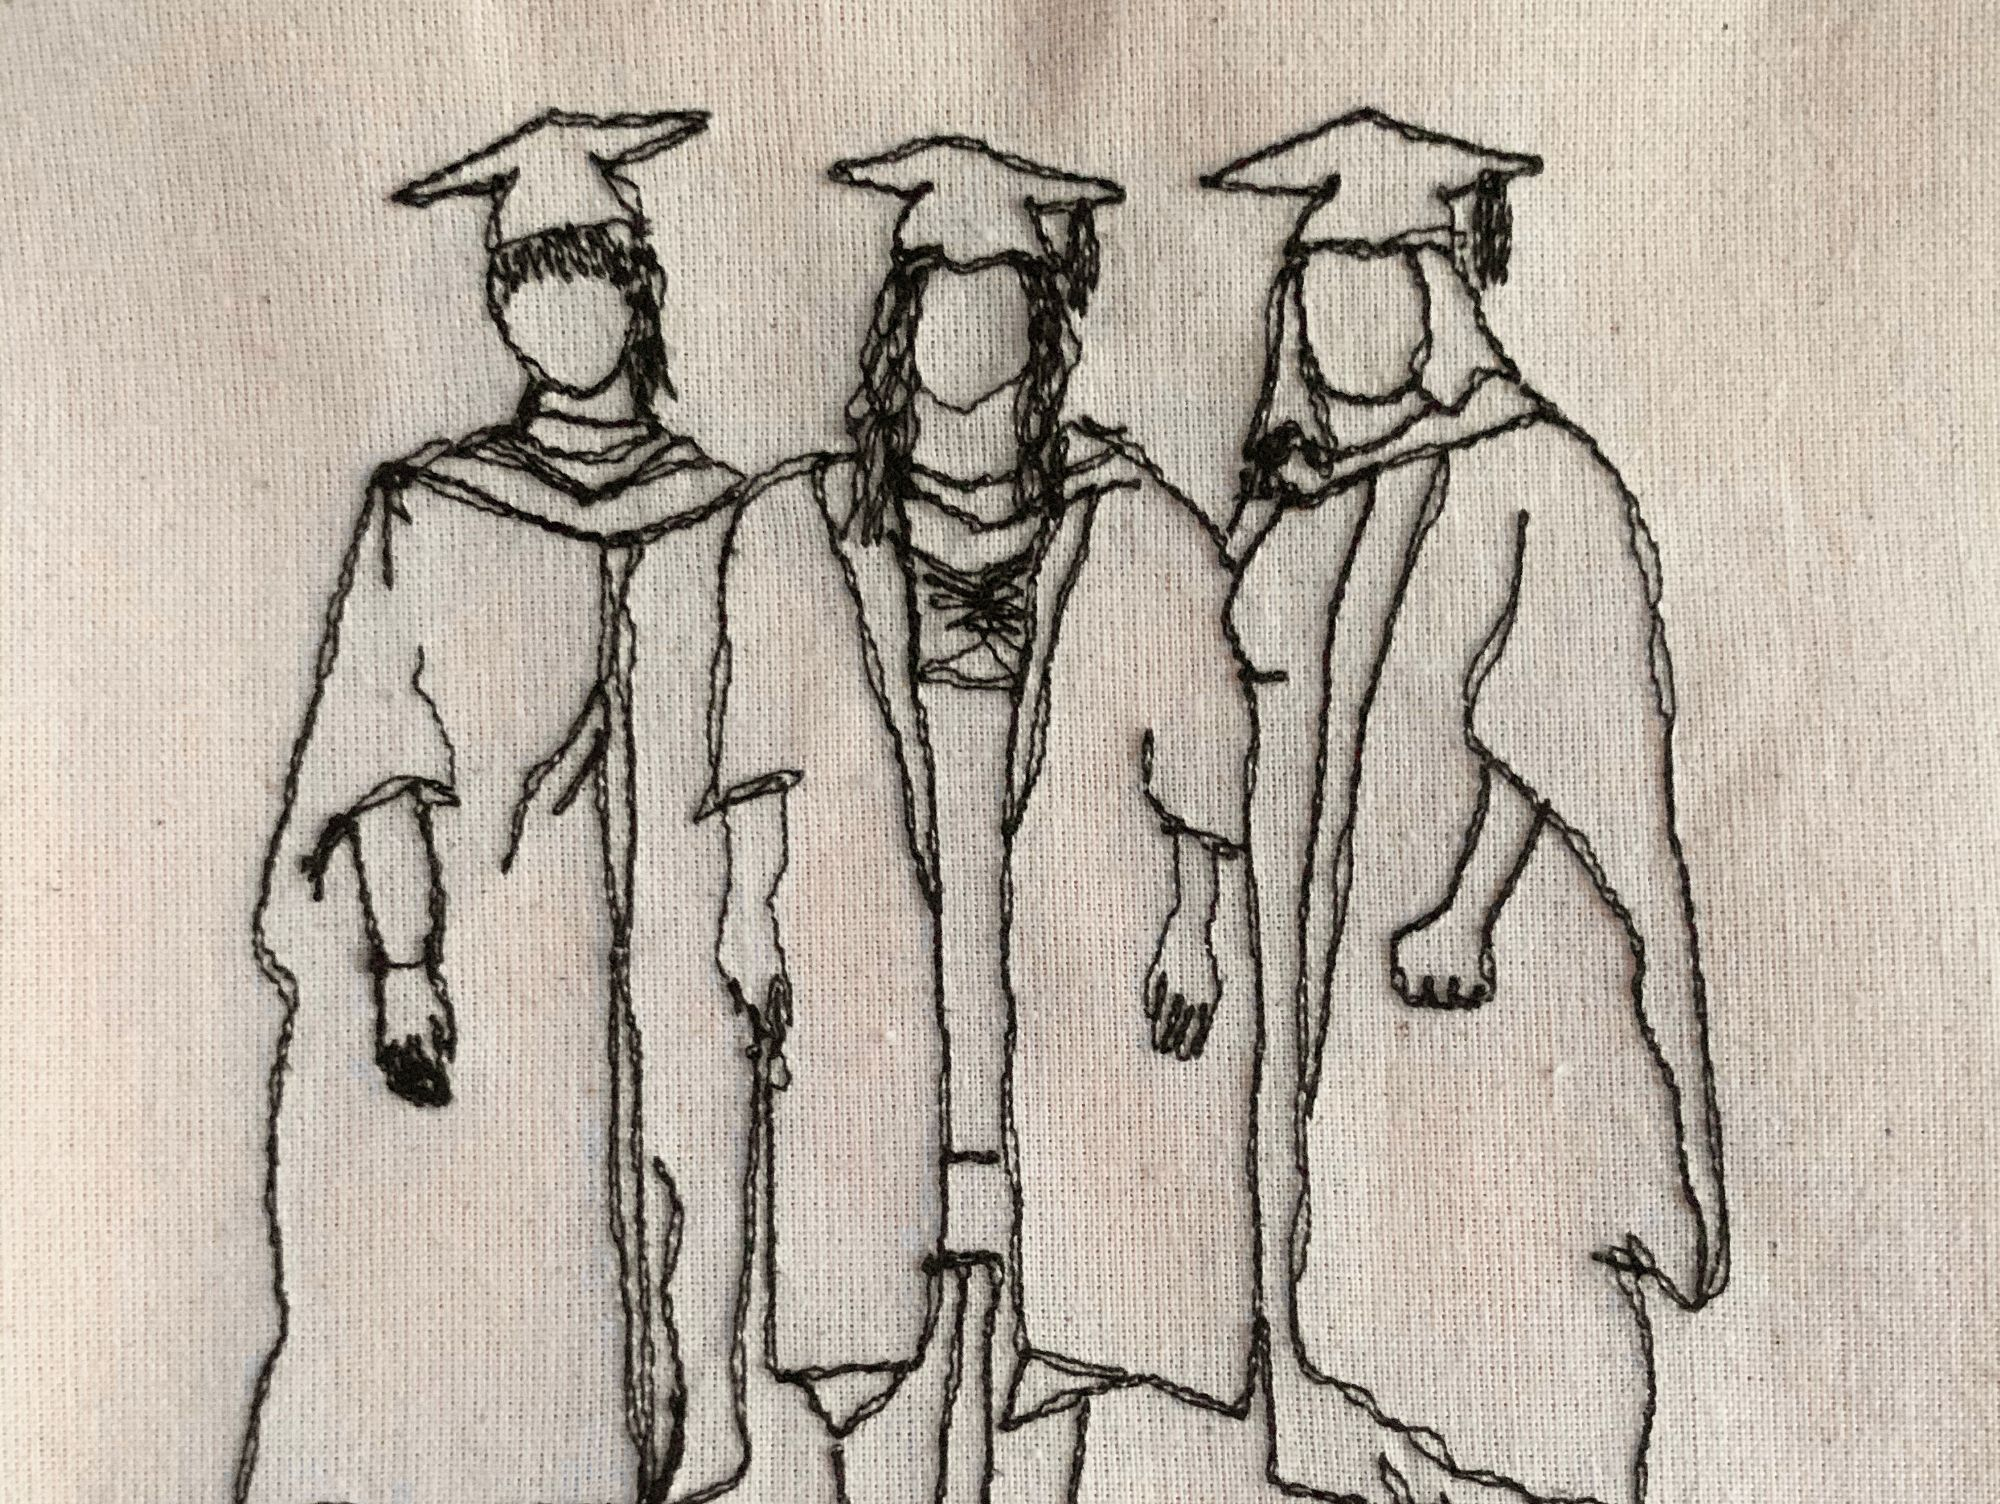 A machine stitched portrait of three woman wearing graduation outfits